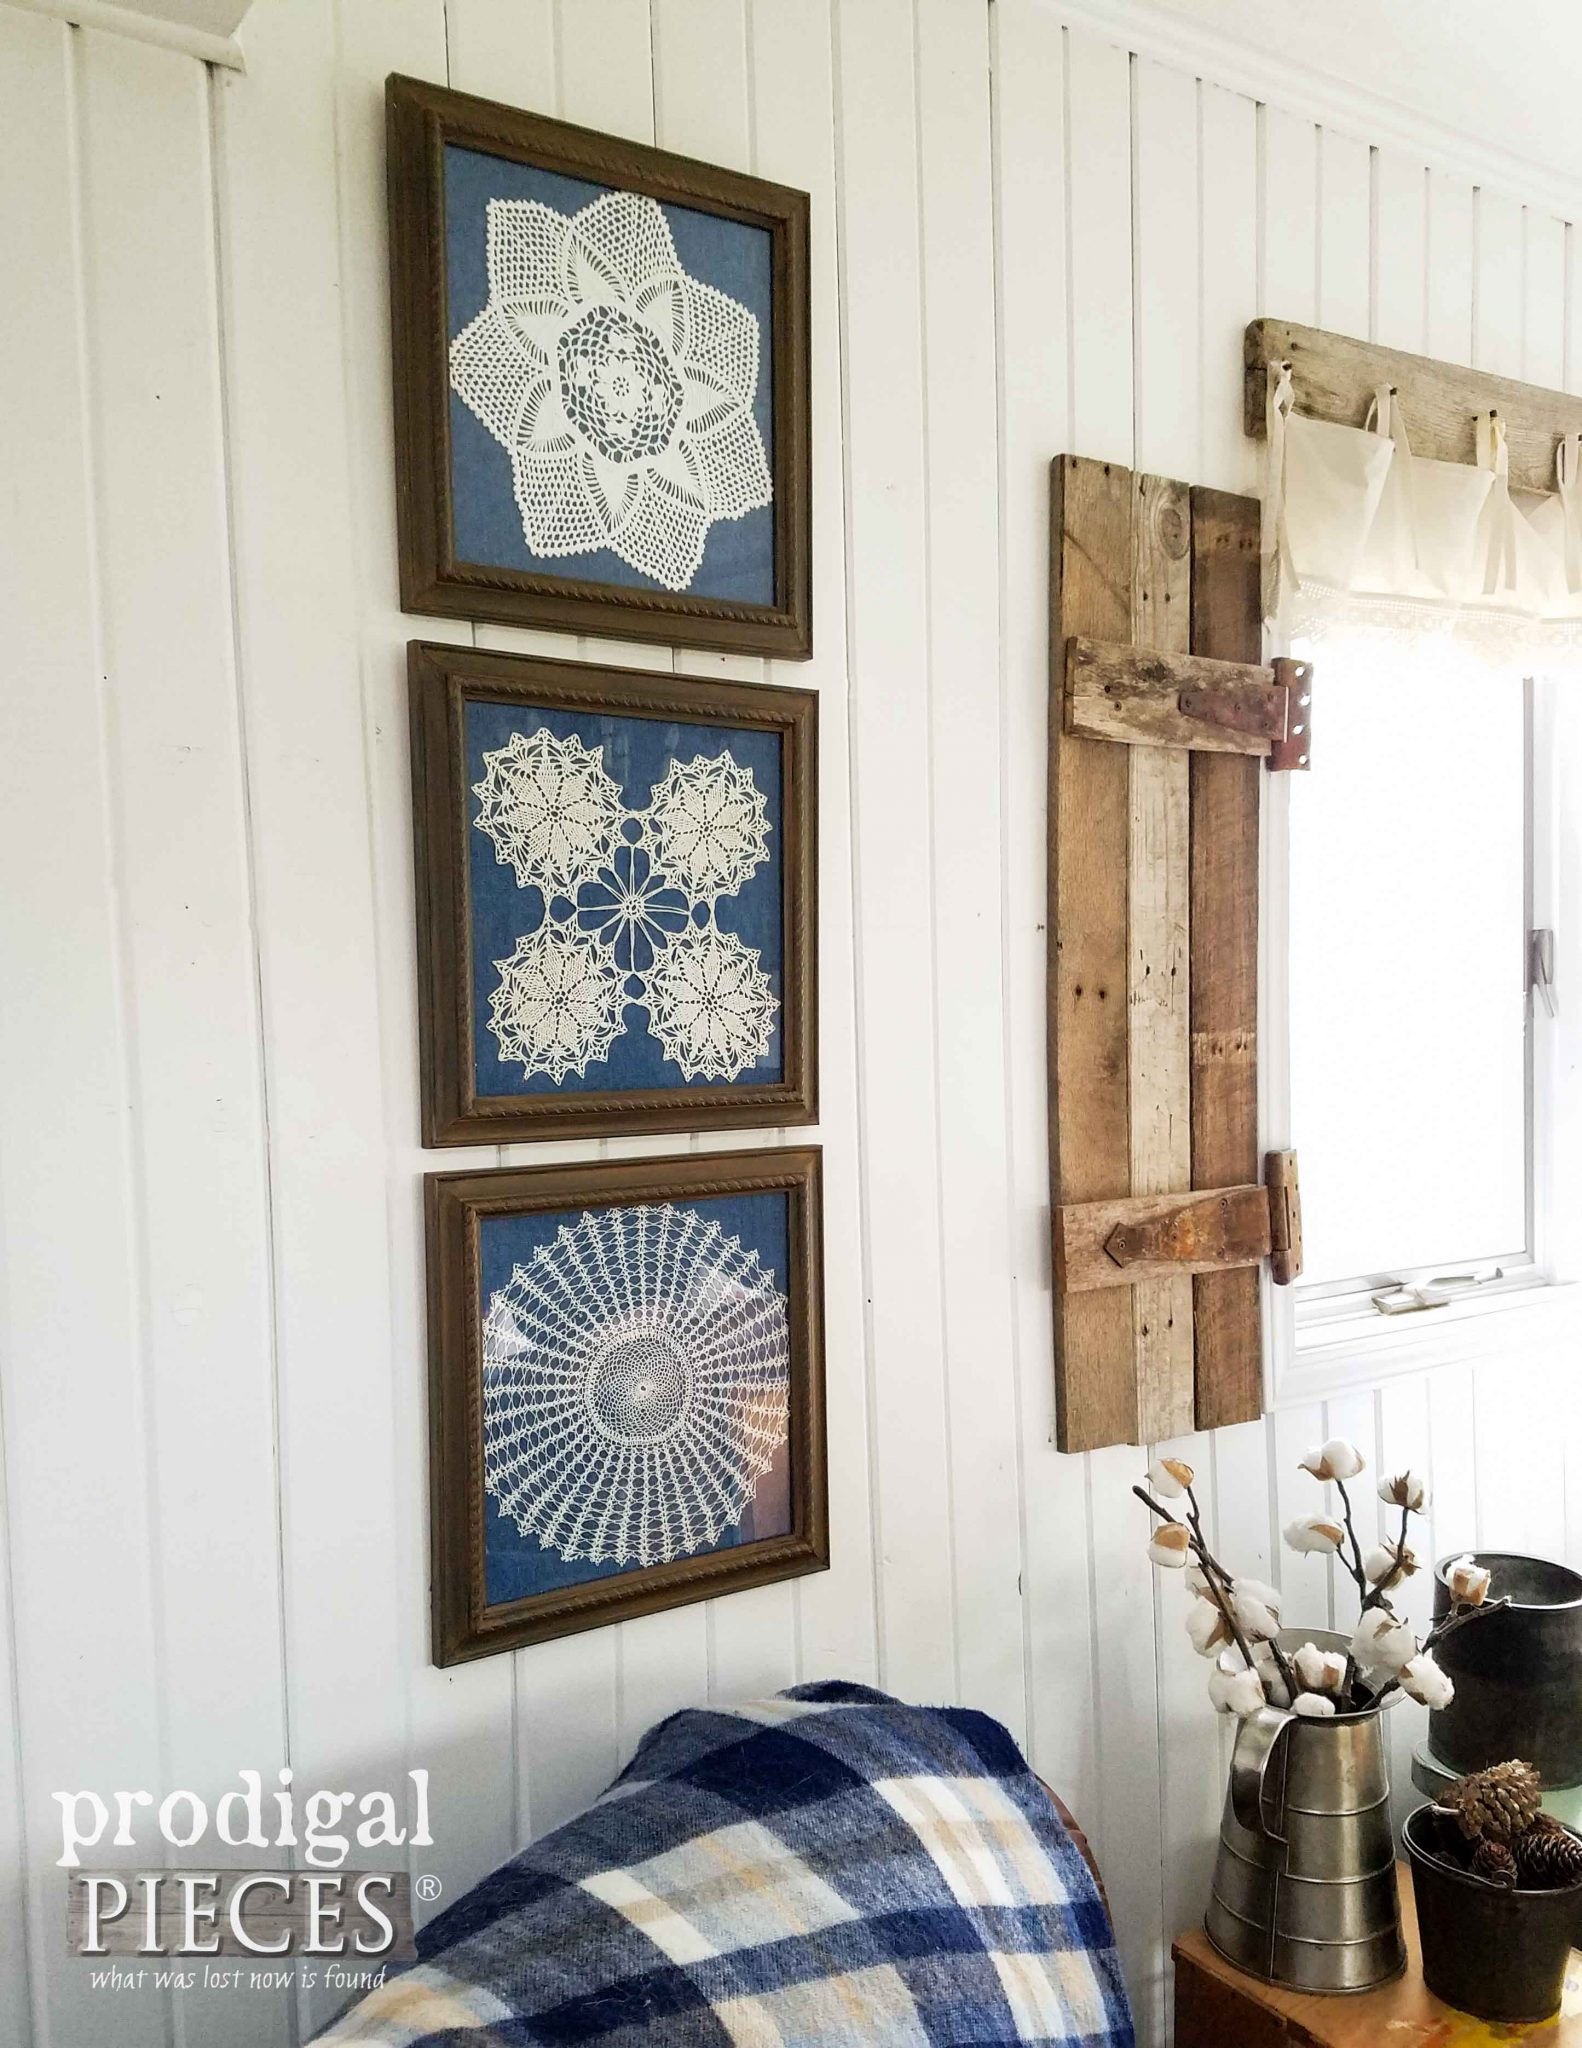 framed doily wall art from curbside finds prodigal pieces. Black Bedroom Furniture Sets. Home Design Ideas